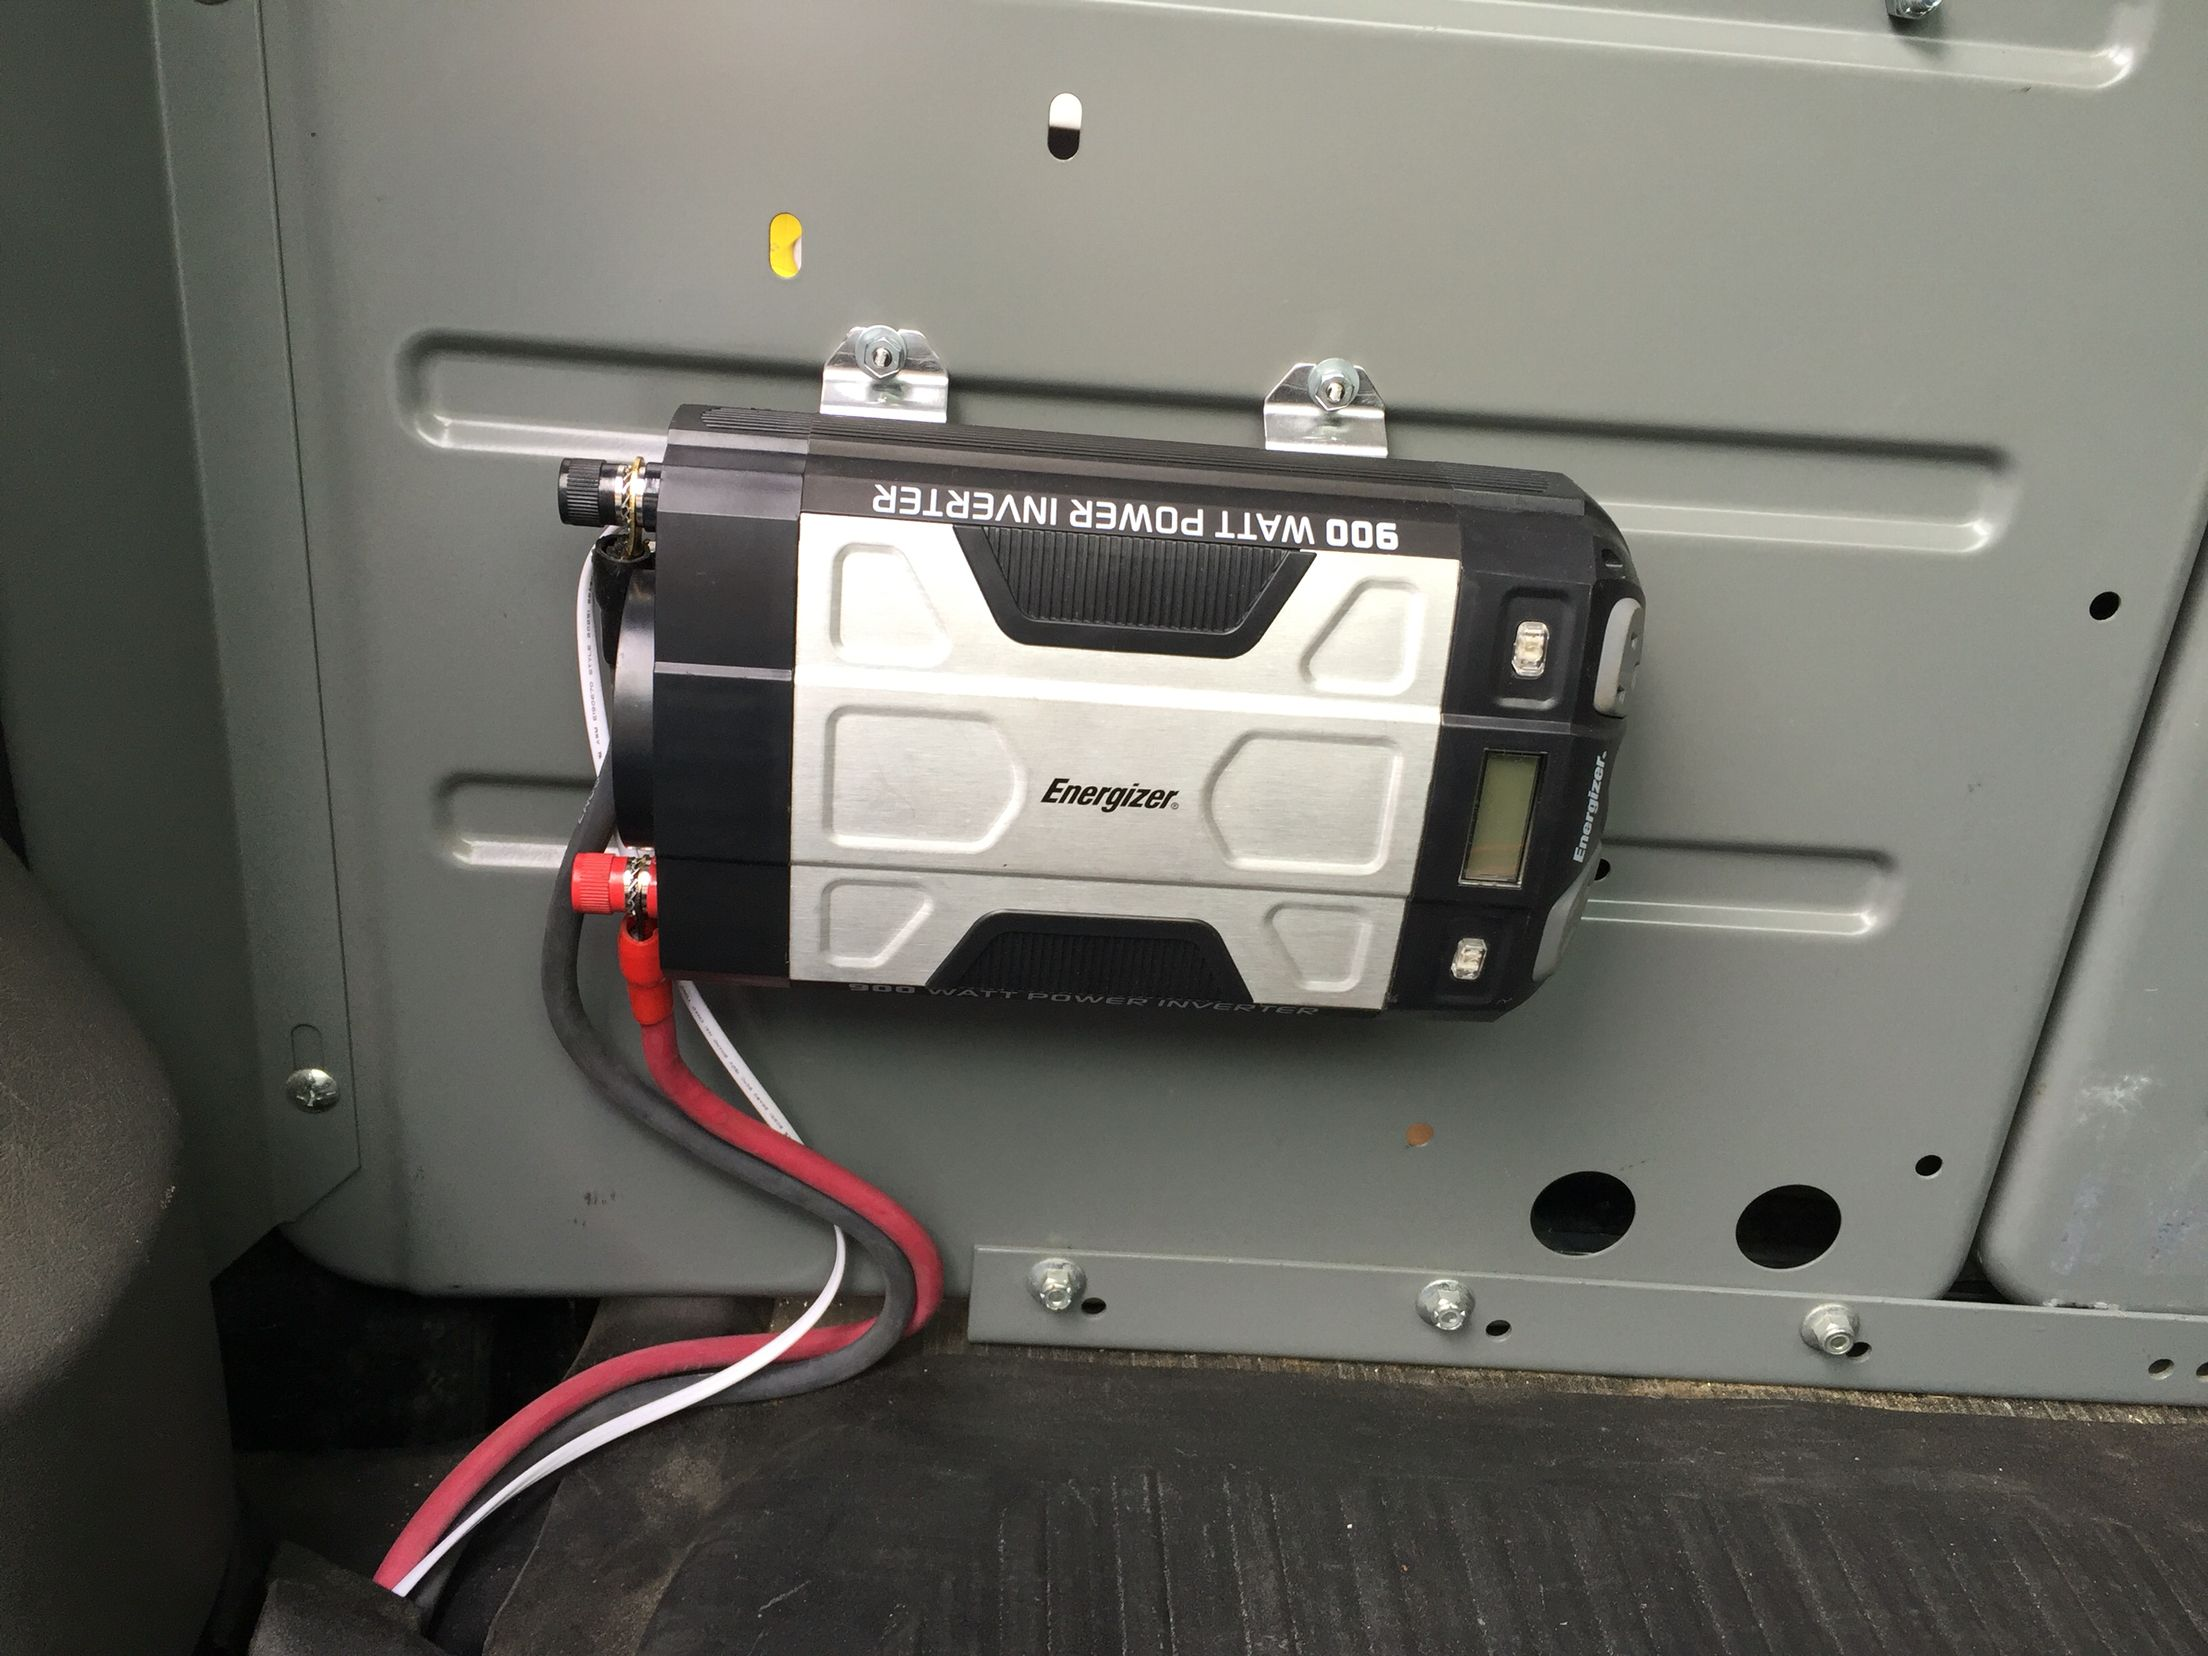 Inverter Install In My Service Van Used Welding Cable For The Power Electrical Wiring Diagrams 2003 Subara Outback Ll Bean Wire Also Installed 120 Volt Outlets With A Remote Button